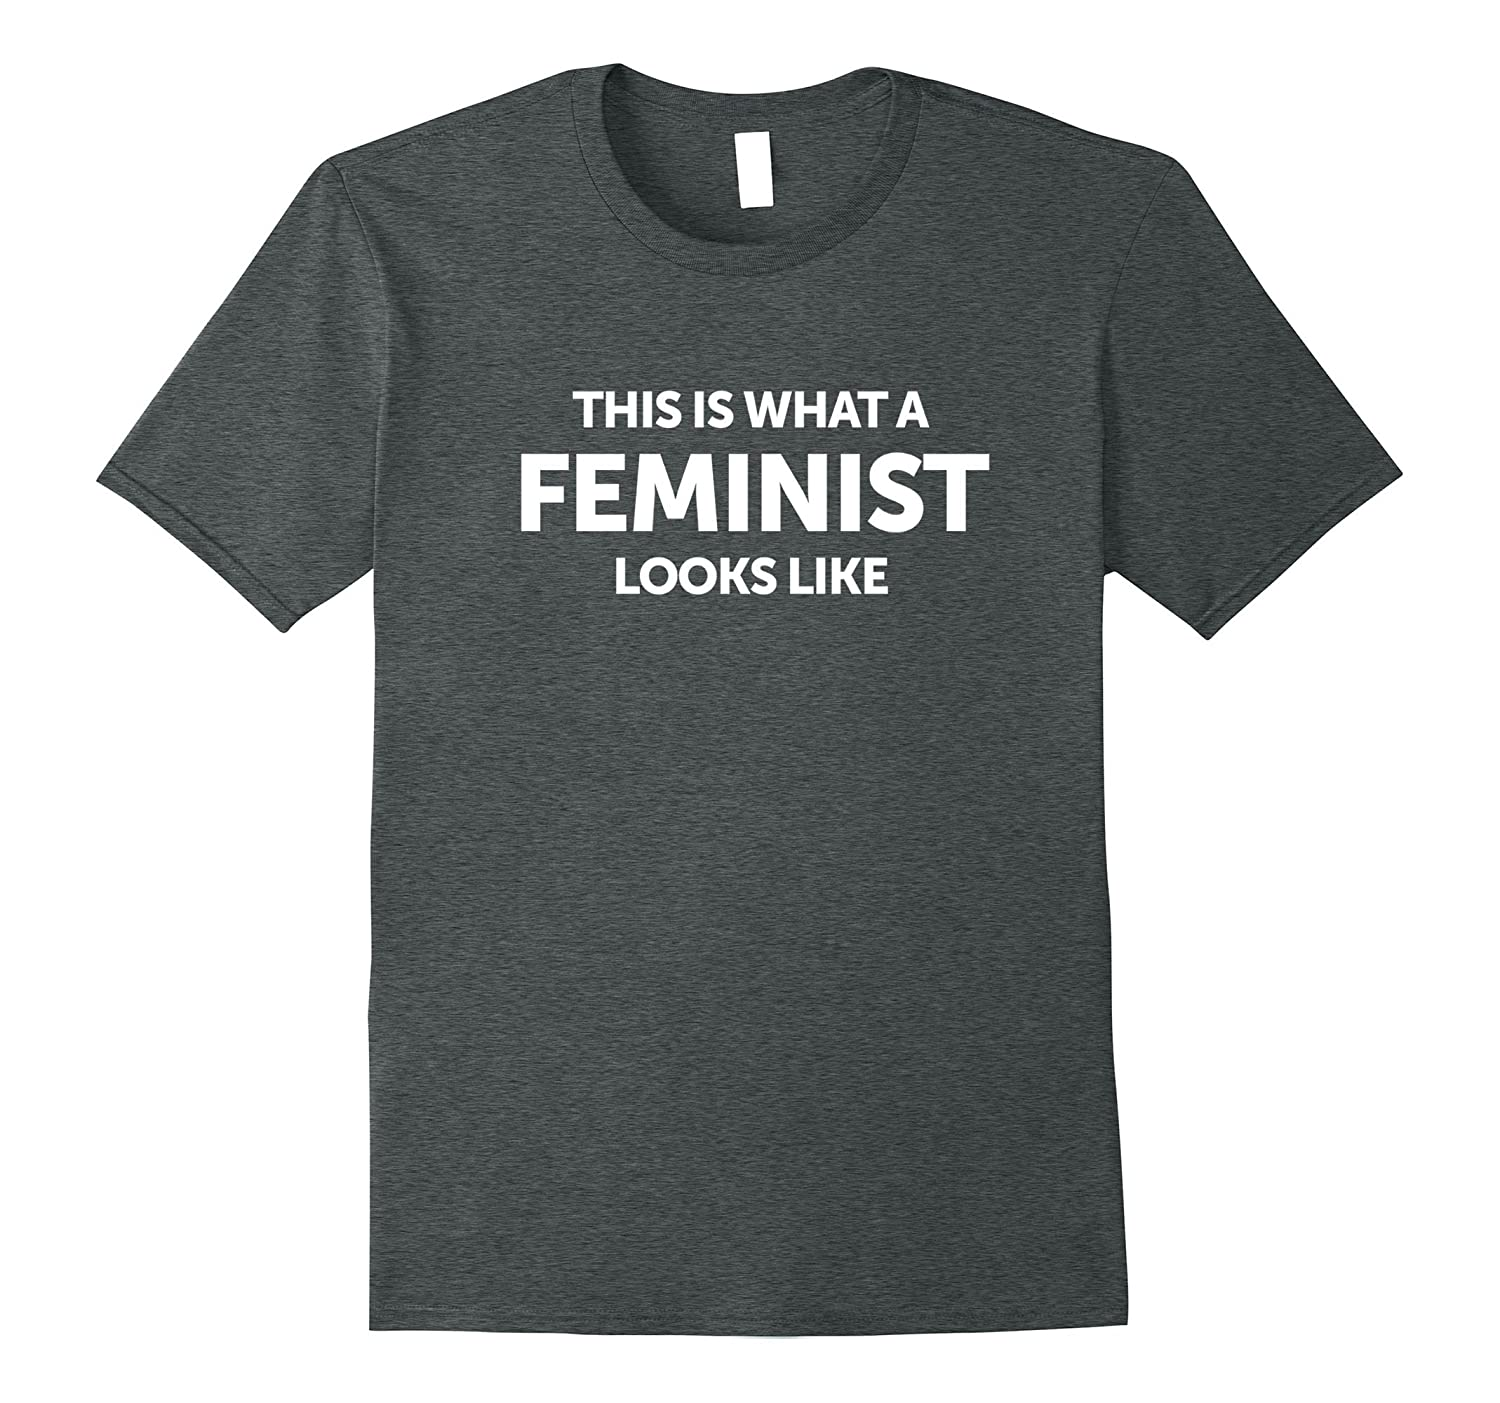 e3025fe9 This Is What A Feminist looks Like Feminism Womens T Shirt-ANZ ...